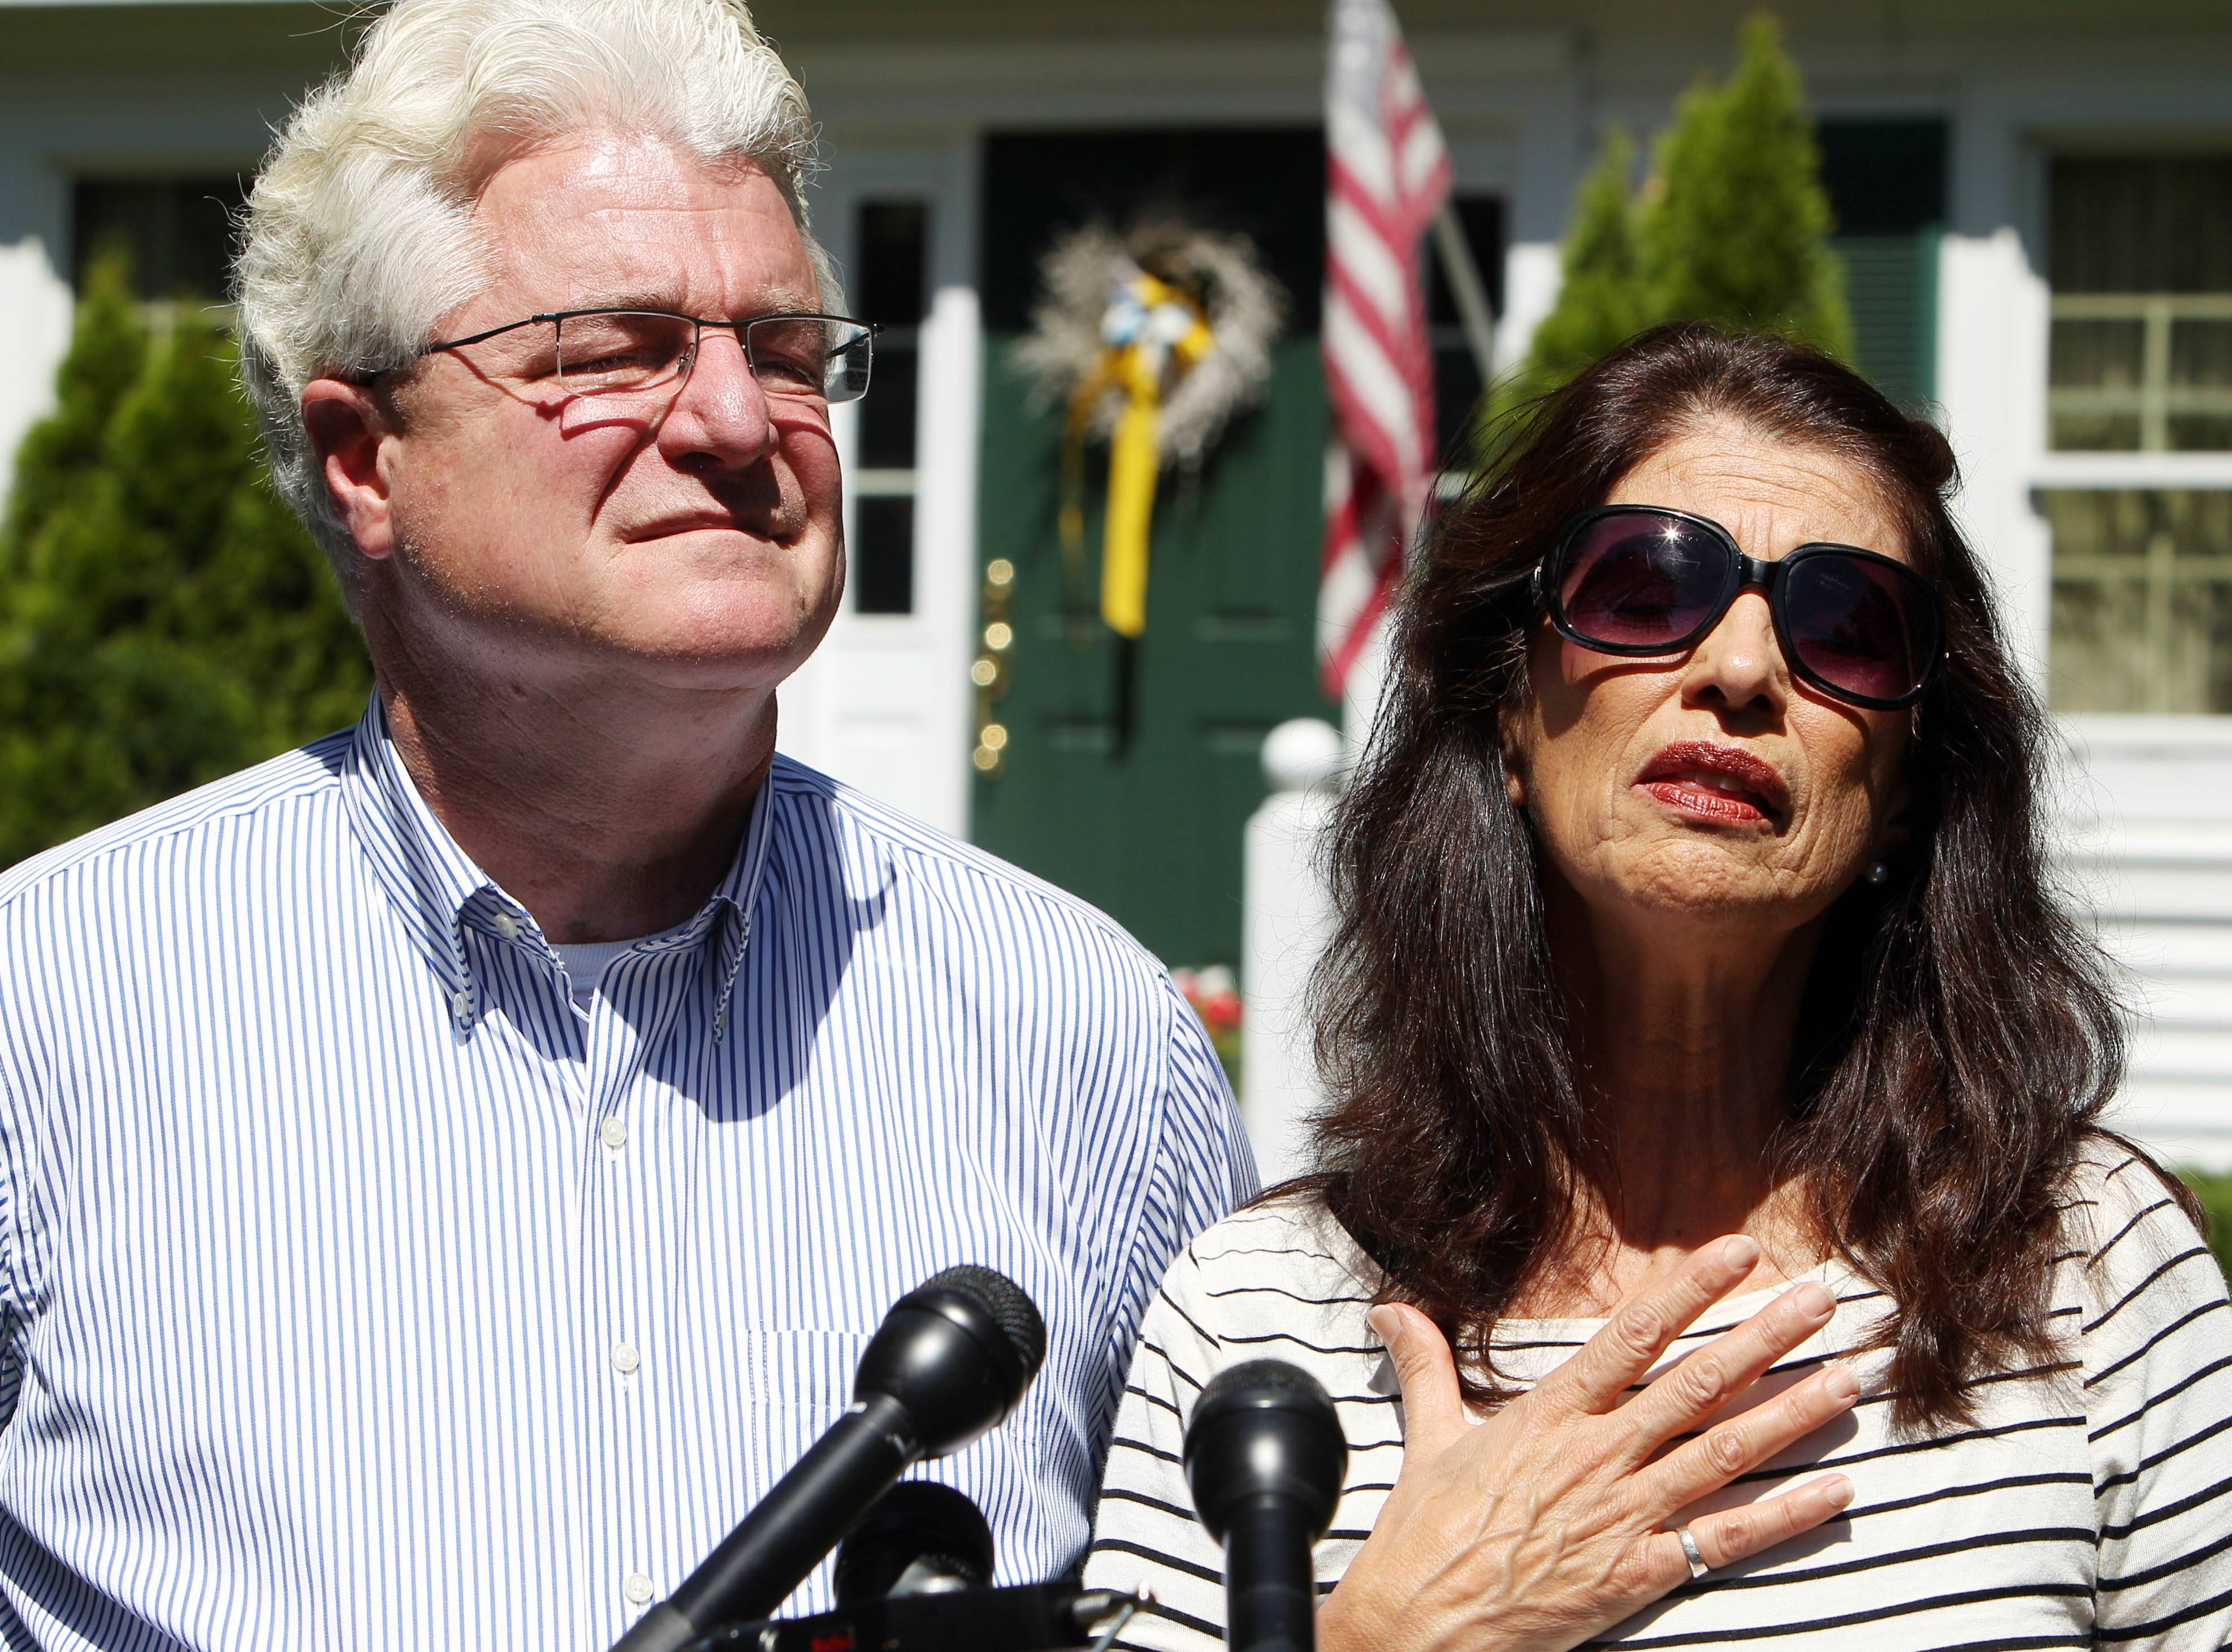 A U.S. official said that ransom demands for American journalist James Foley were sent to Diane and John Foley, seen here talking to reporters Wednesday.